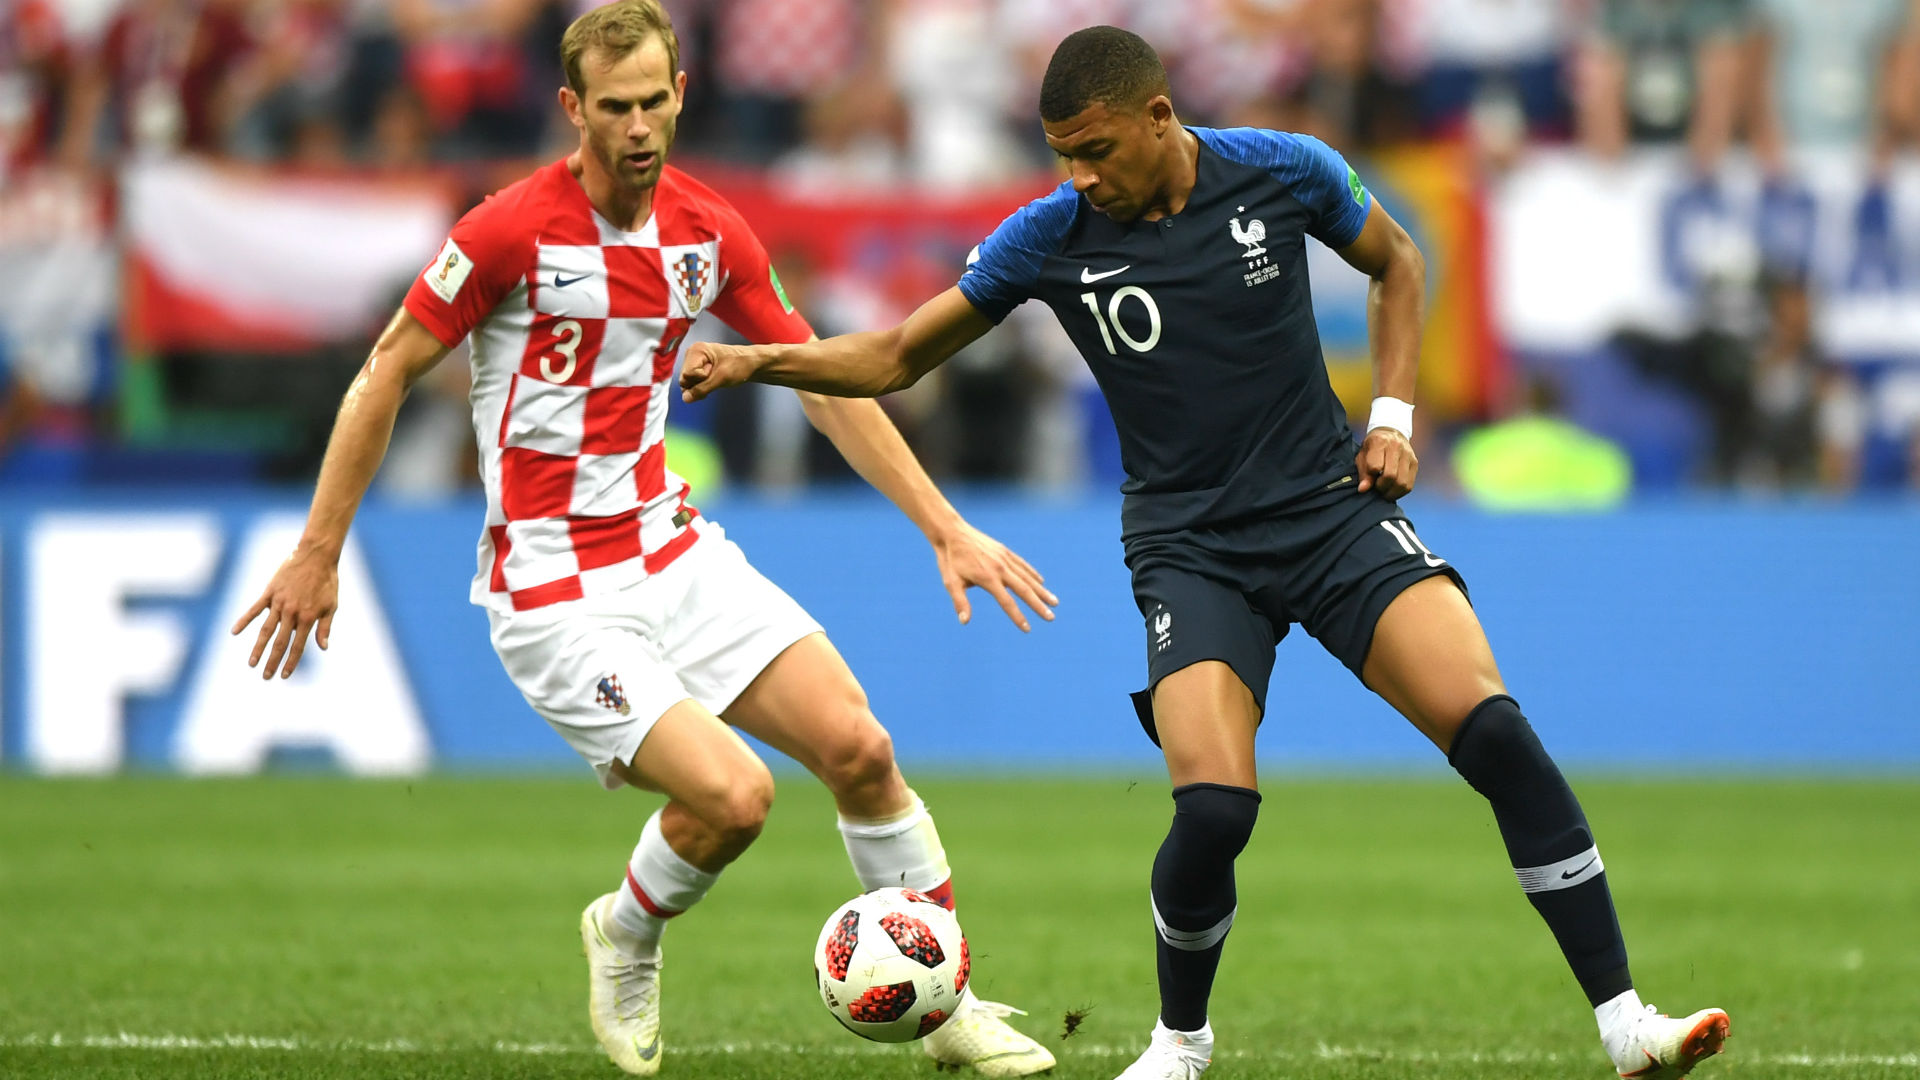 Kylian Mbappe Ivan Strinic France Croatia World Cup Final 15072018